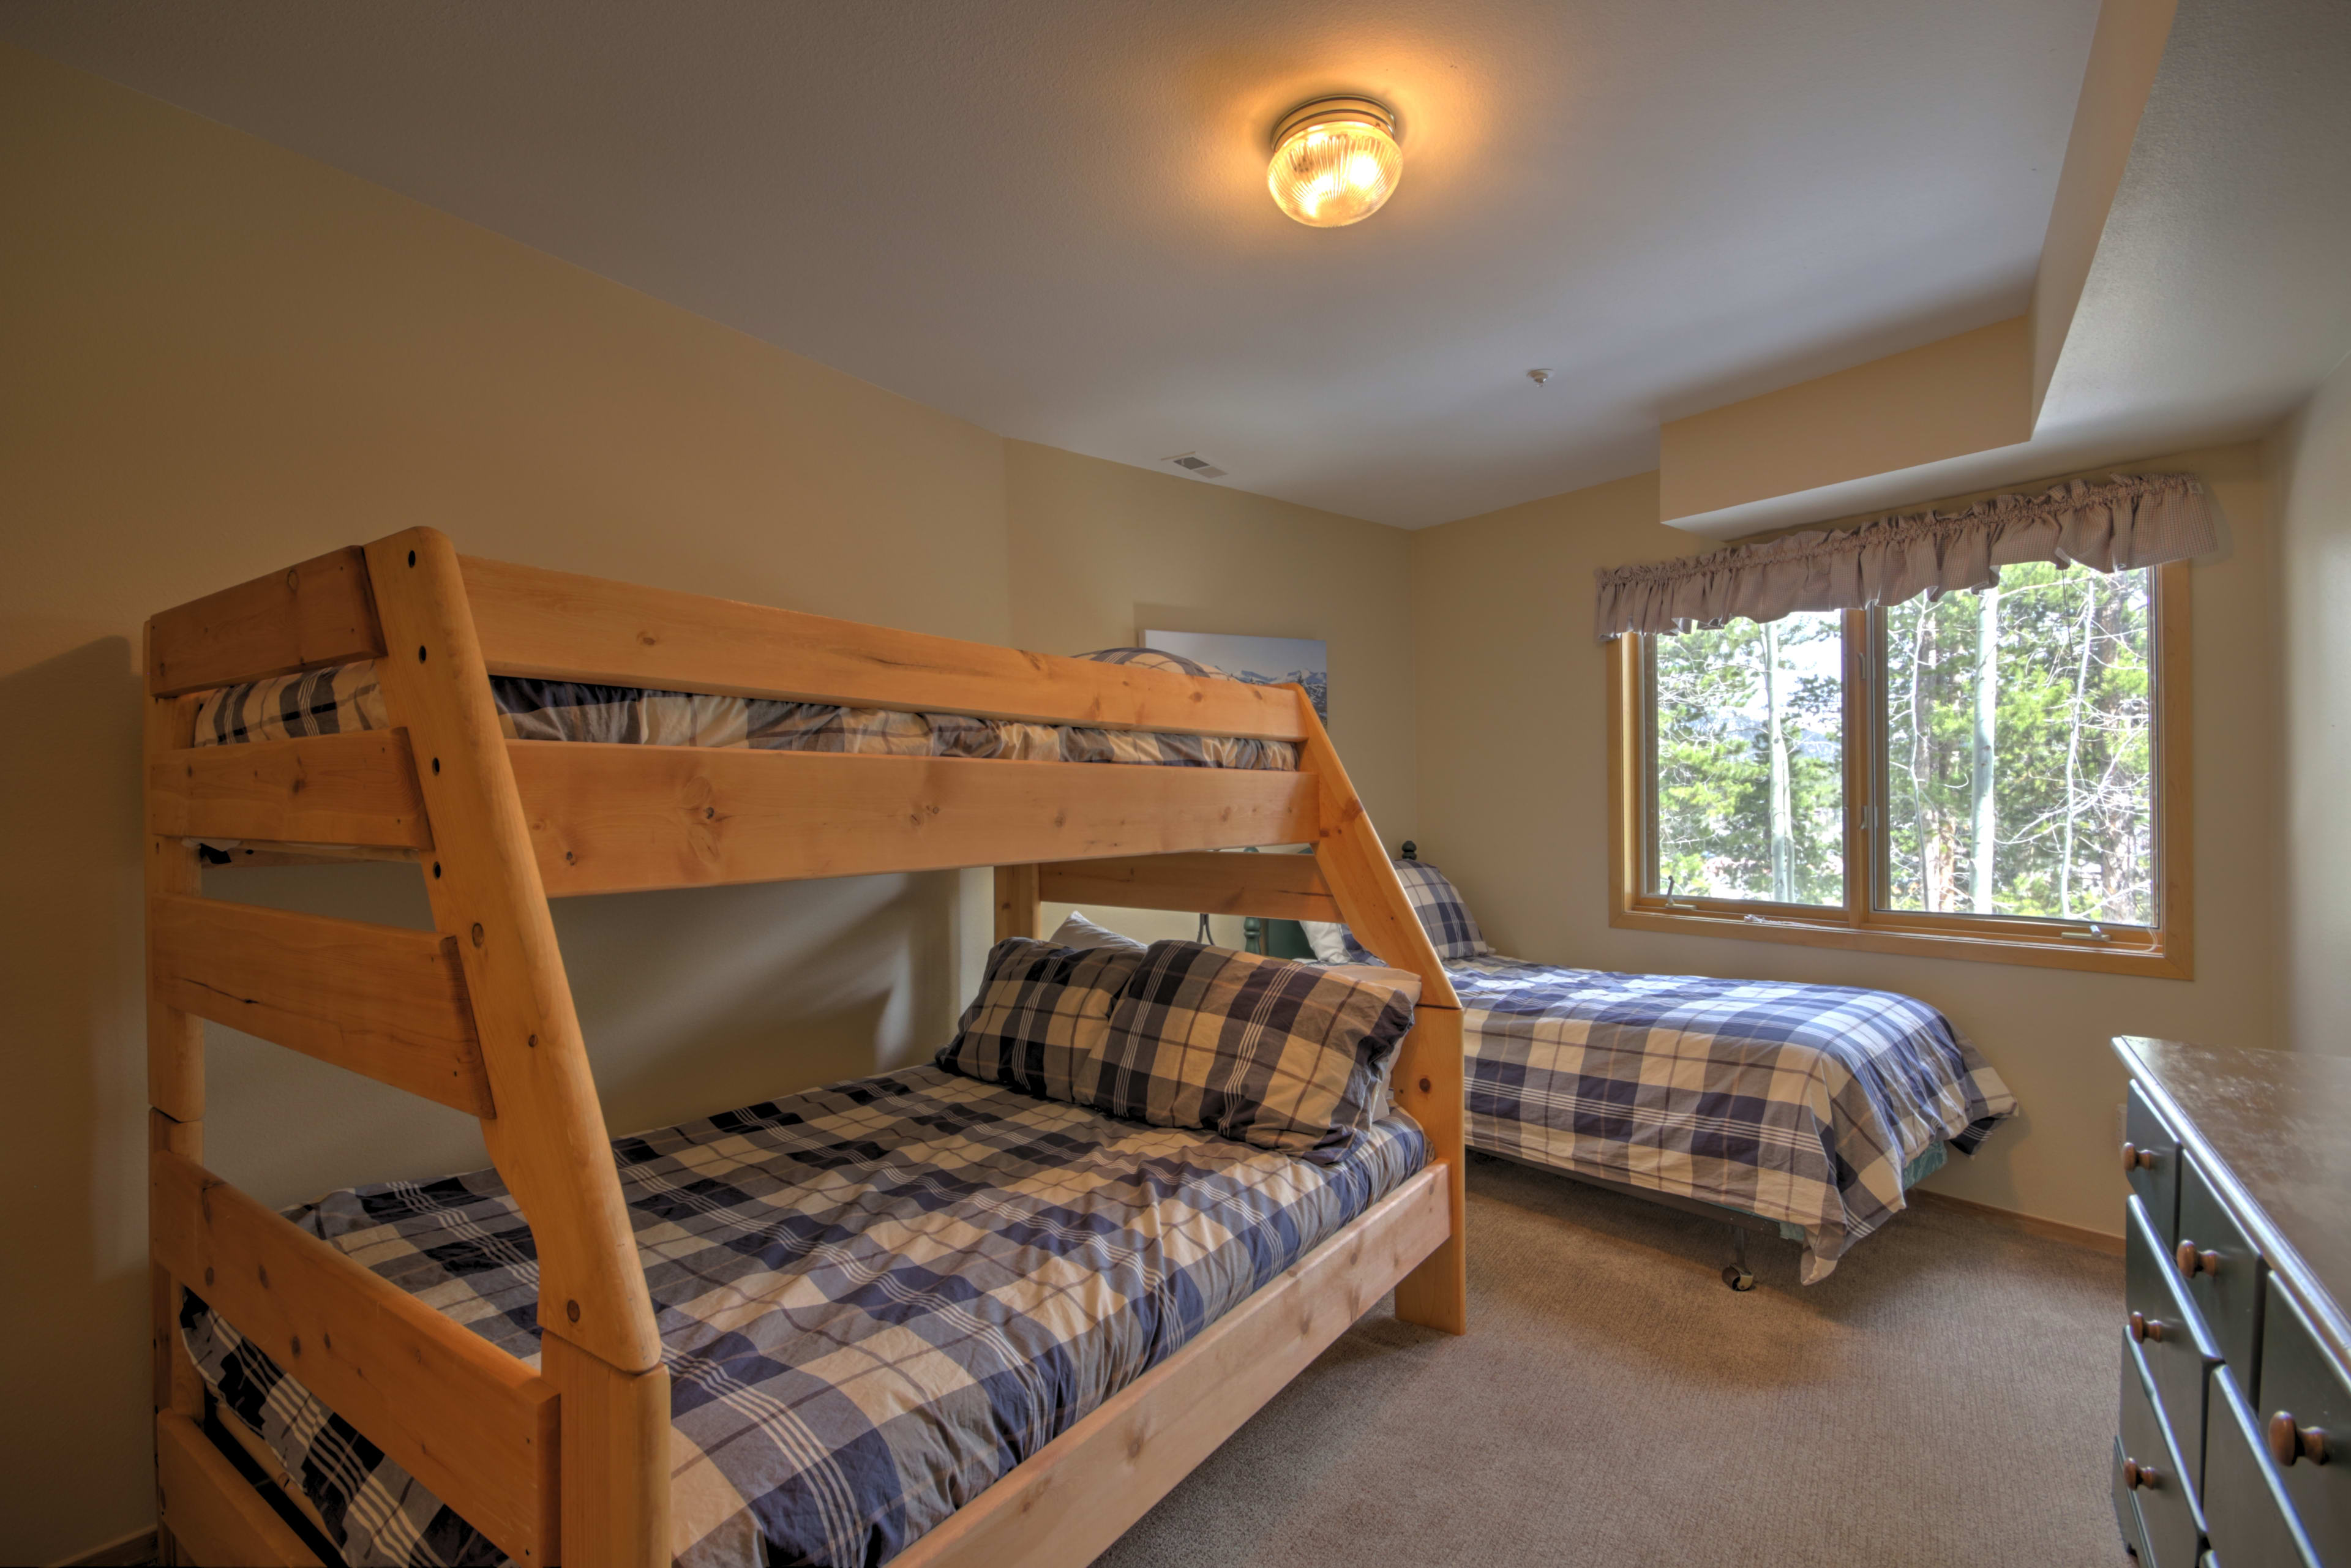 The downstairs bedroom features a bunk bed and twin bed - perfect for the kids!